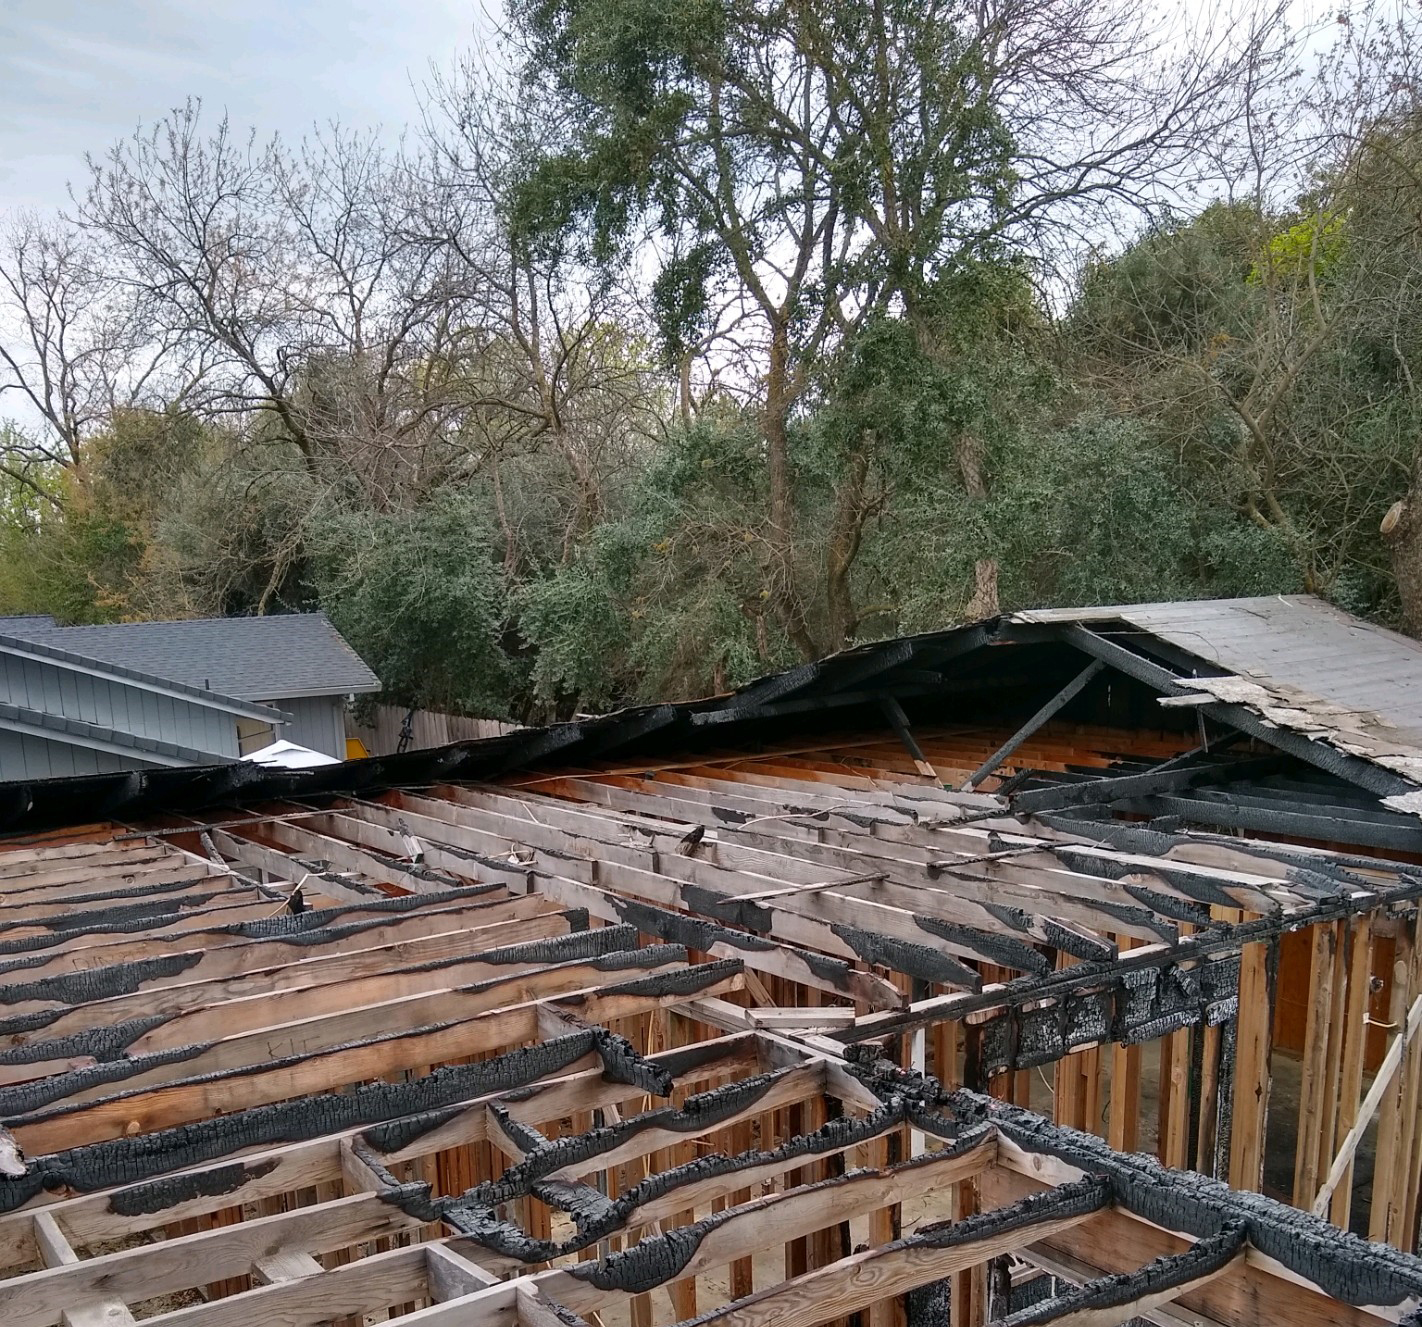 Mann Fire Remodel-Fire Damage Photo (Roof)